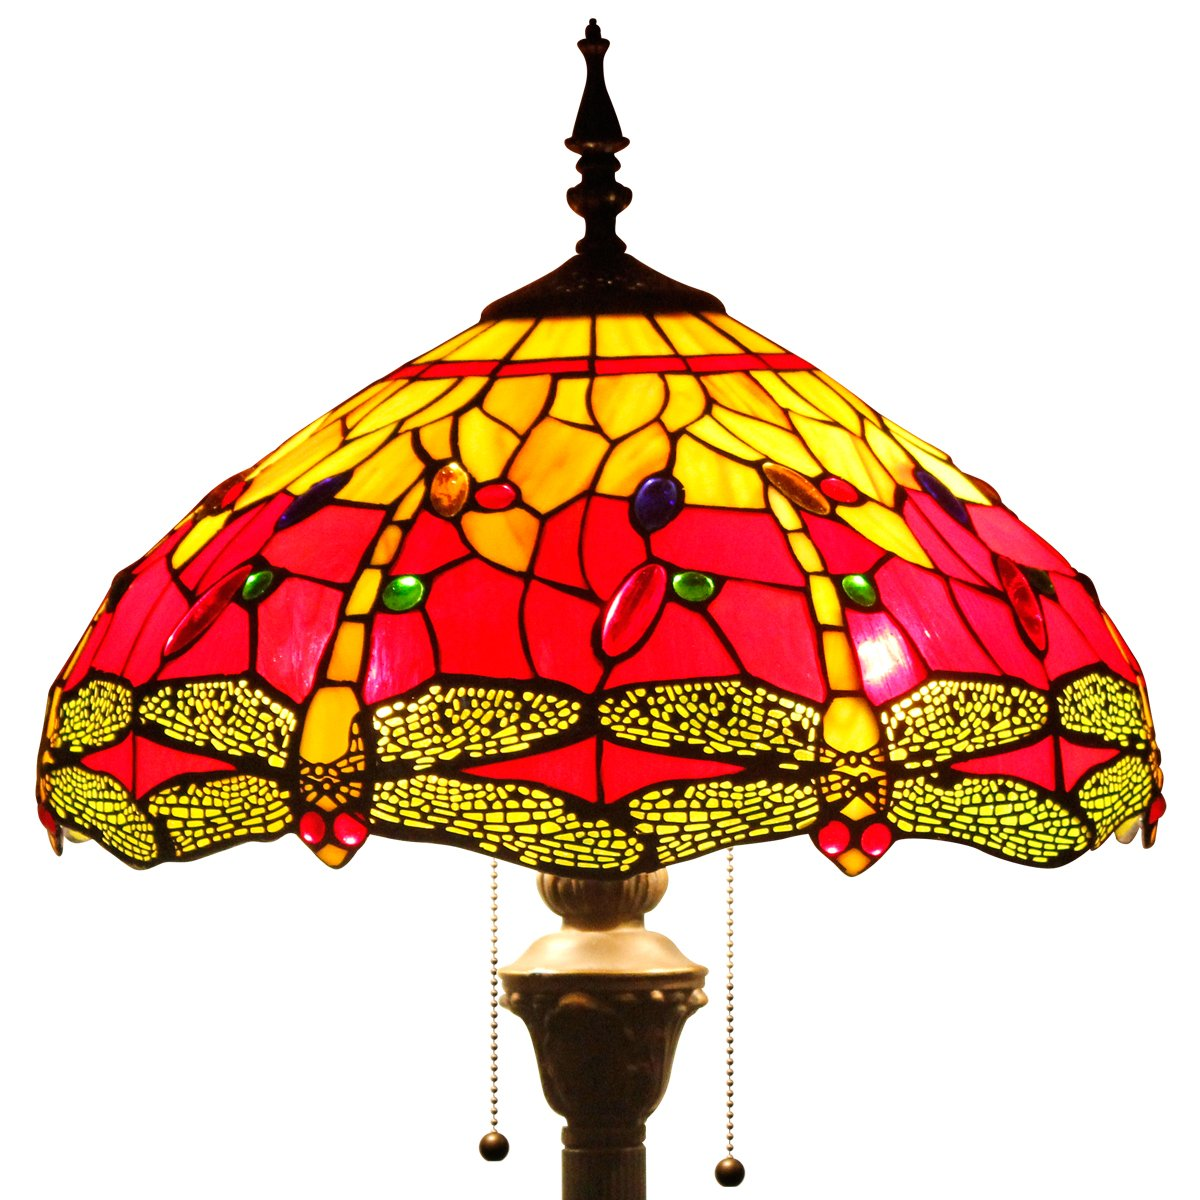 Tiffany style floor lamp lighting S009R series W16 inch red dragonfly shade E26 by werfactory